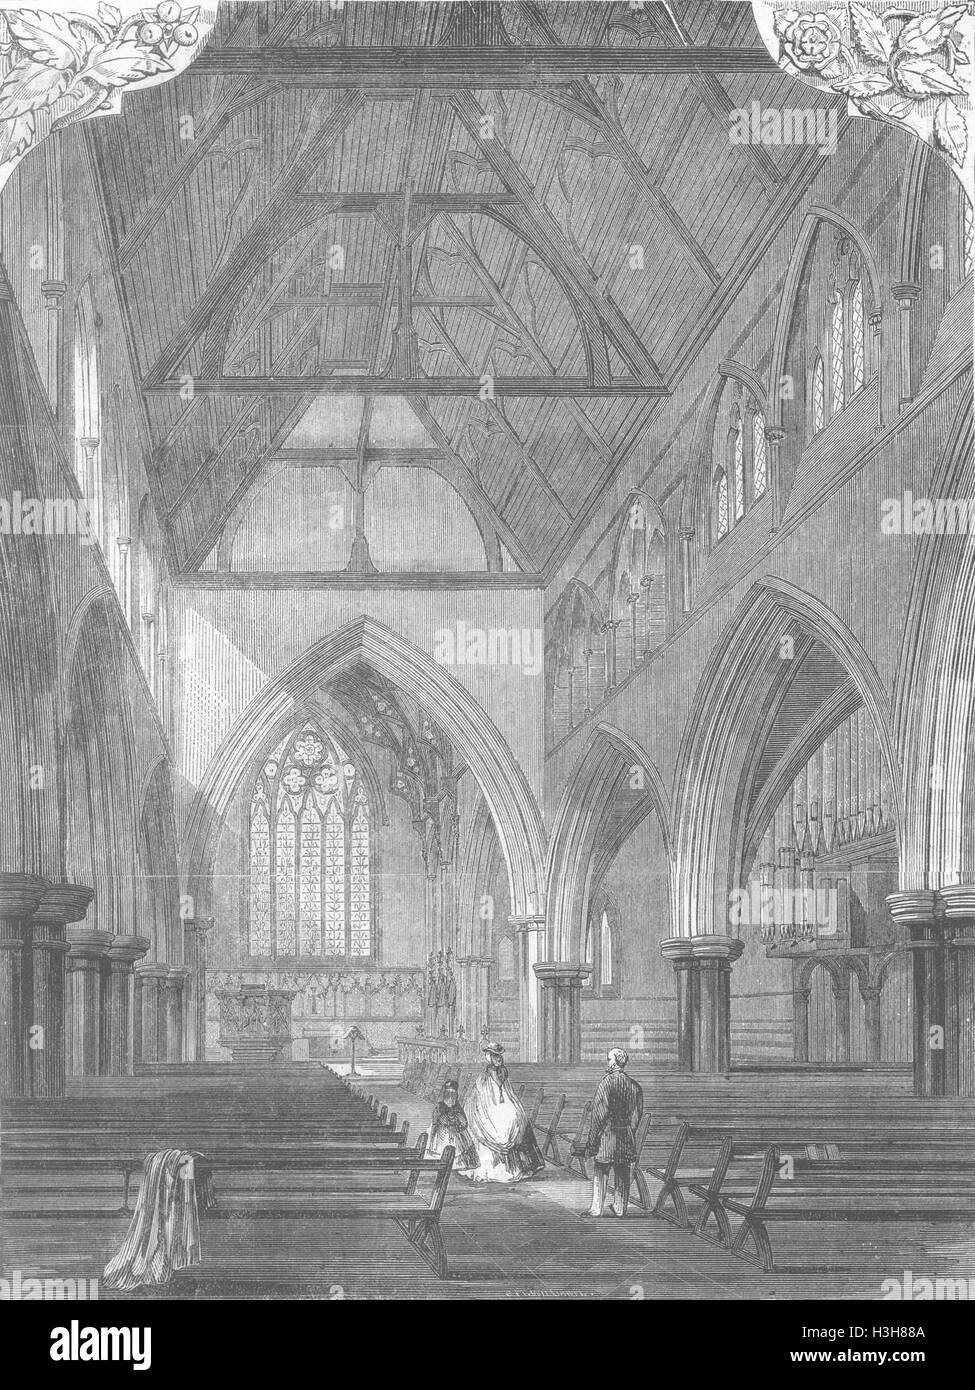 LANDSCAPES All Saints Church, Notting Hill 1866. Illustrated London News - Stock Image